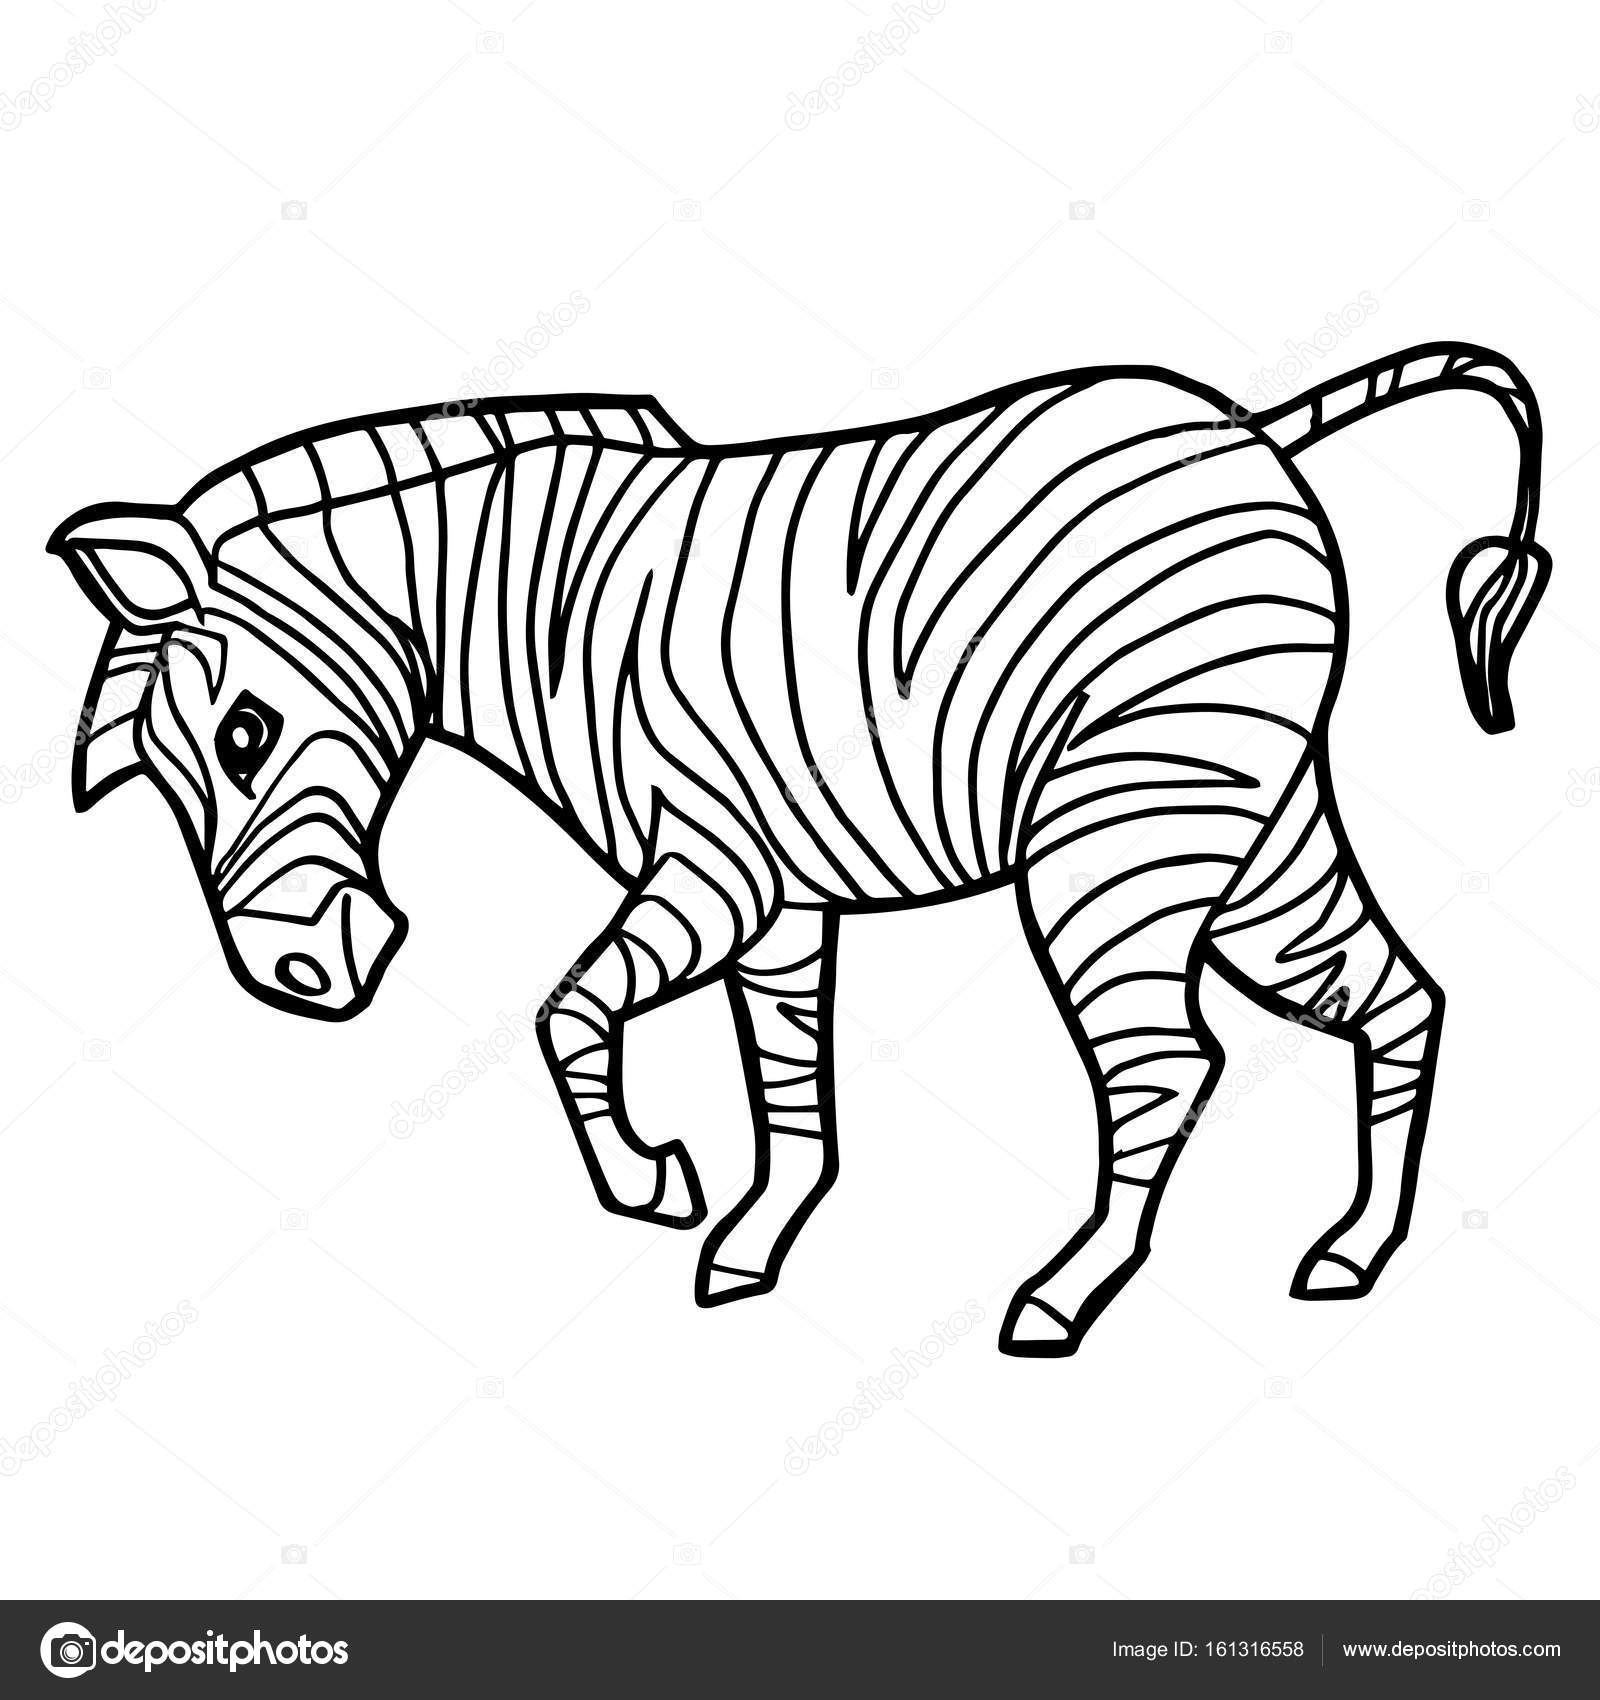 Pictures Zebra To Print And Color Cartoon Cute Zebra Coloring